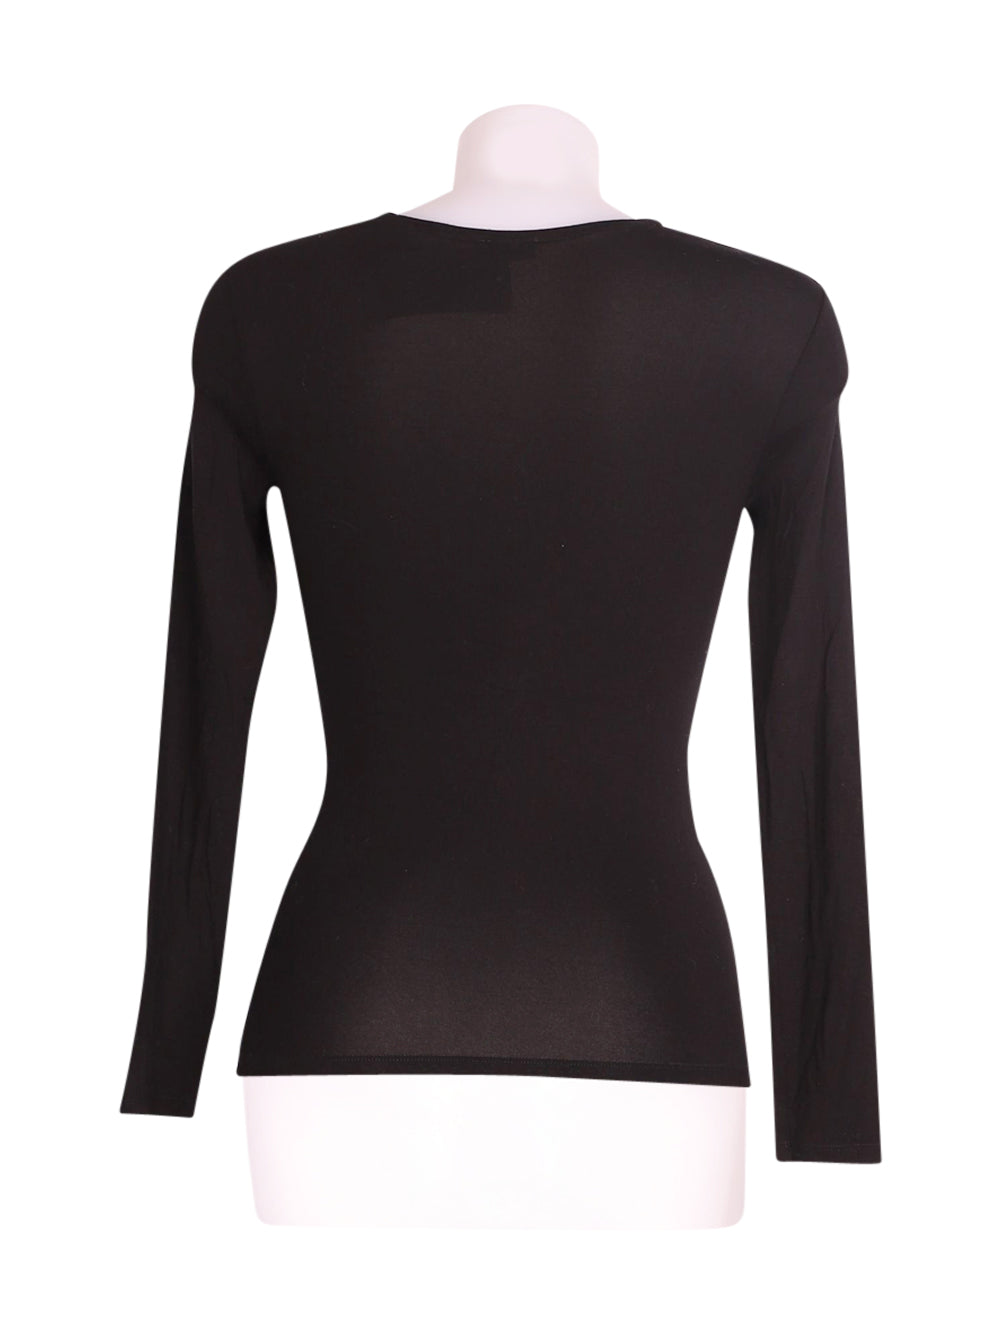 Back photo of Preloved Intimissimi Black Woman's long sleeved shirt - size 8/S